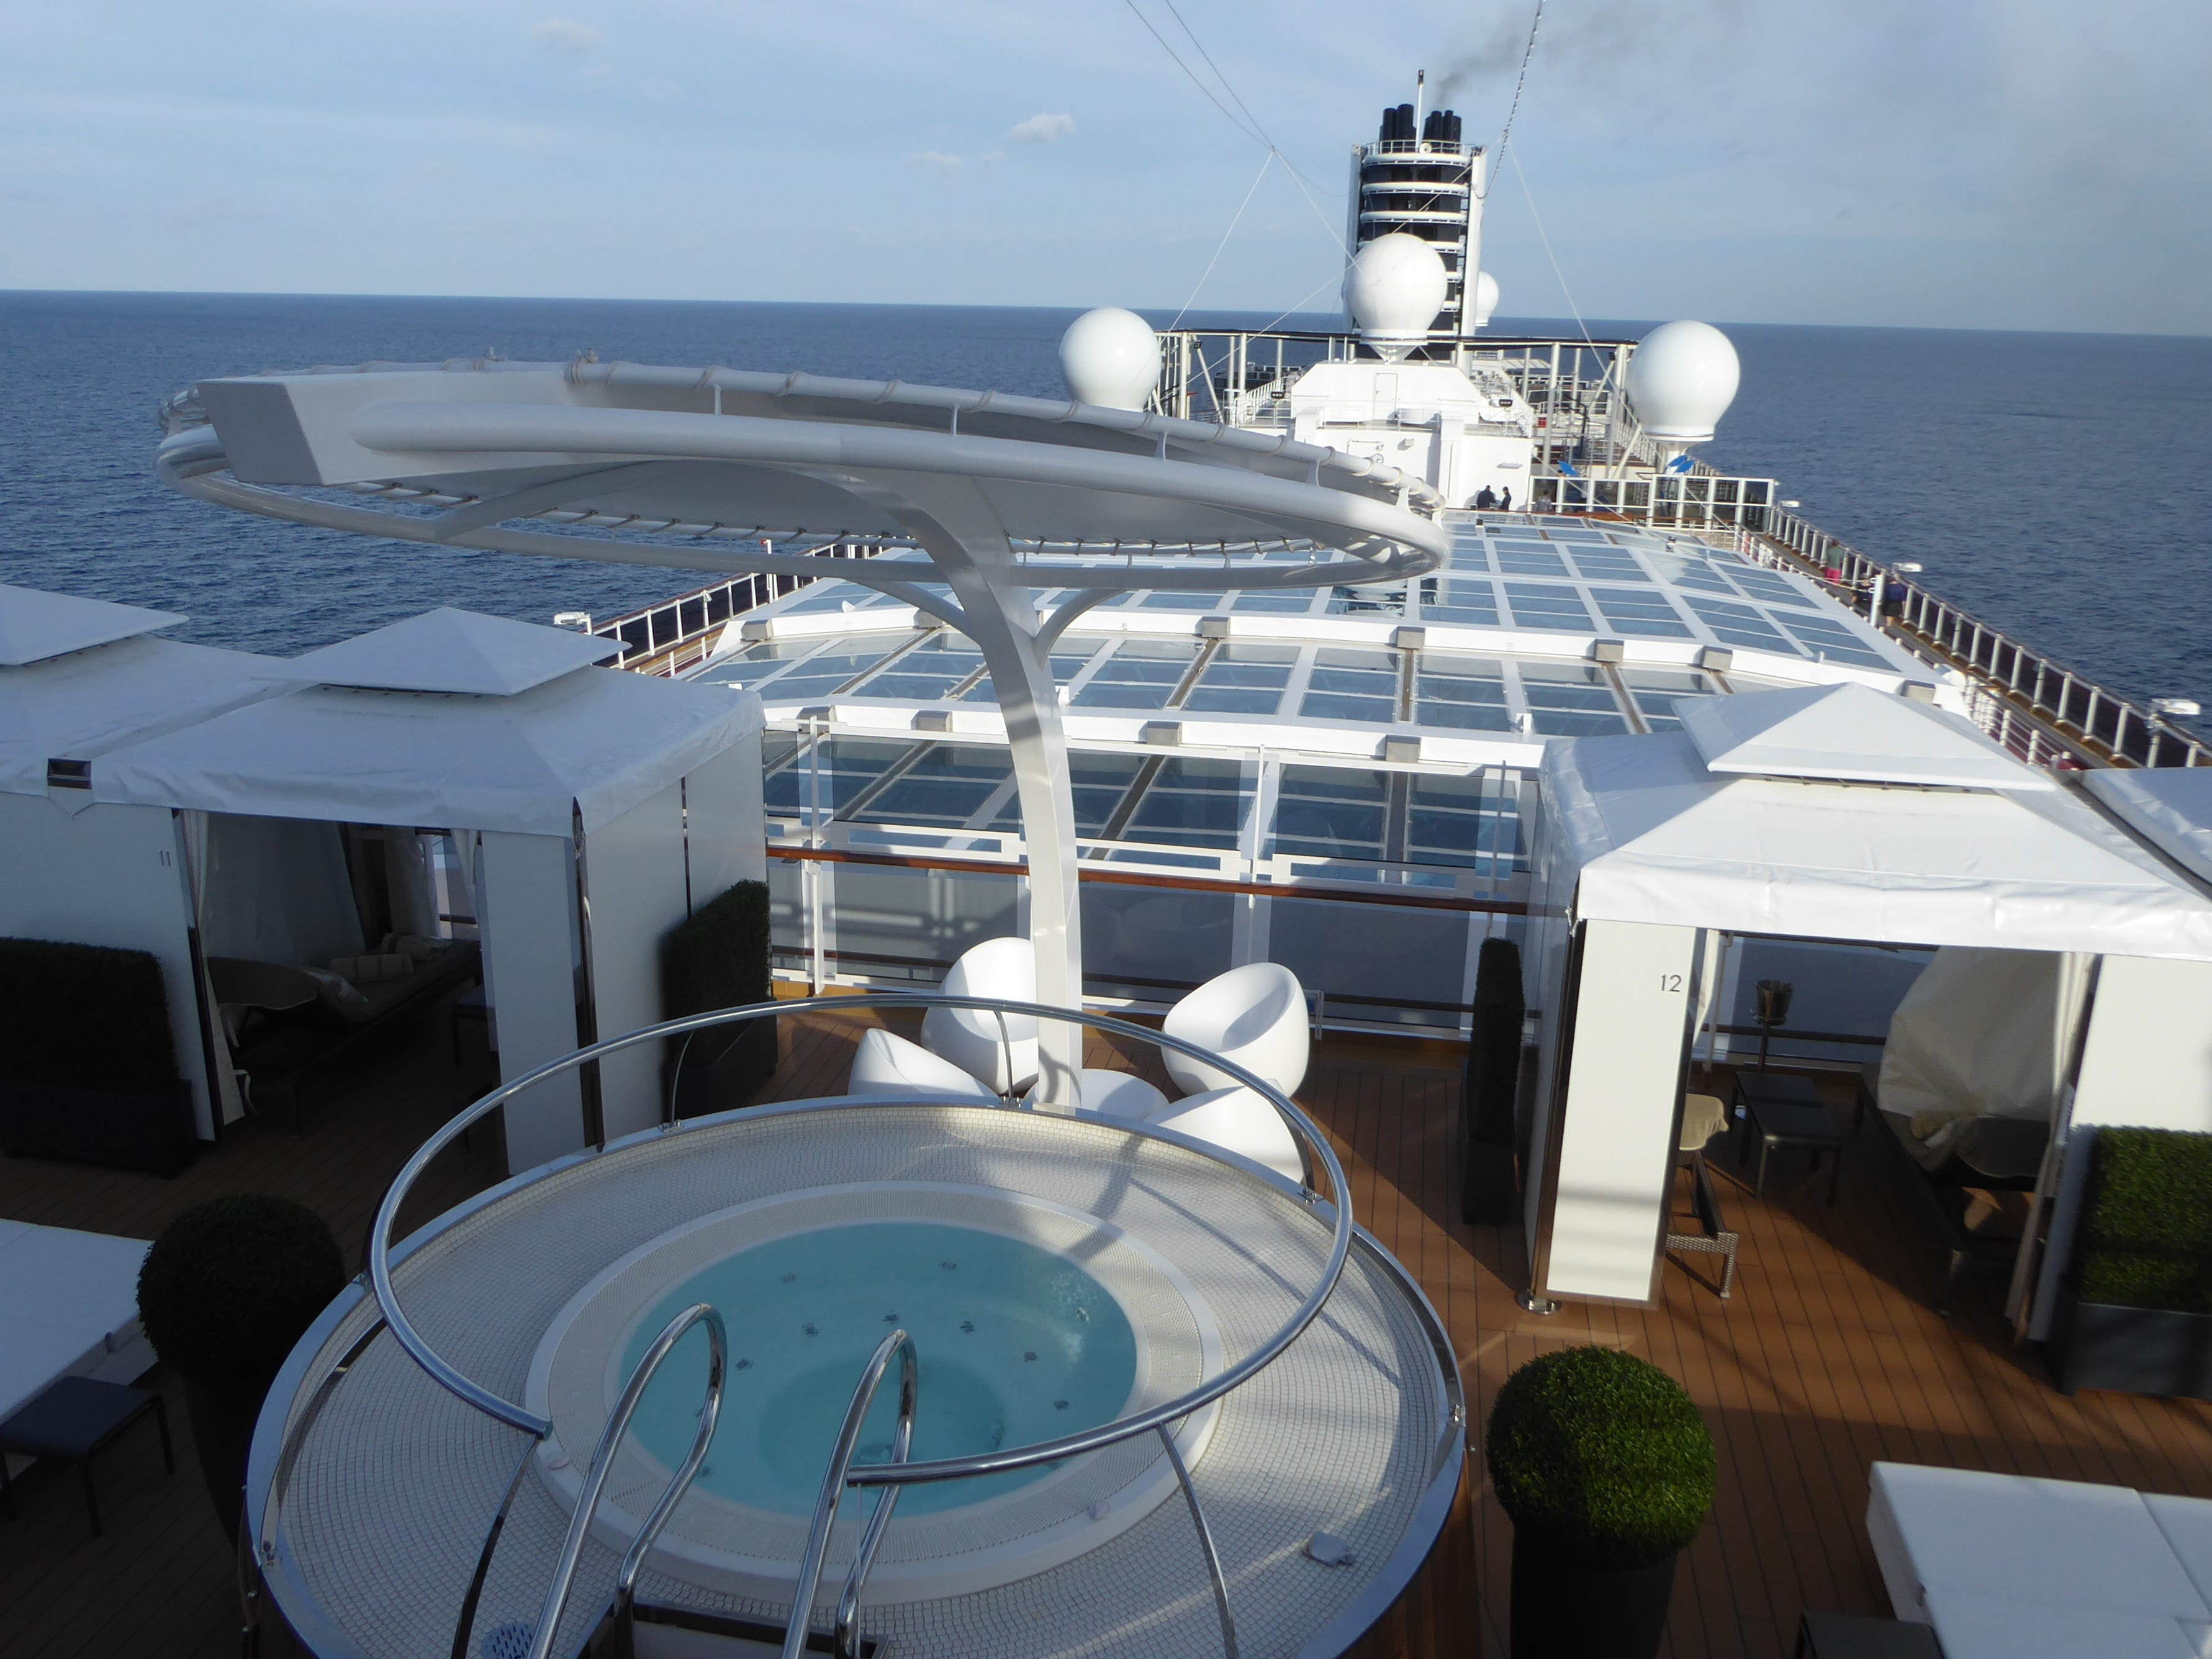 This is a view overlooking the midships portion of the Nieuw Statendam from Deck 14.